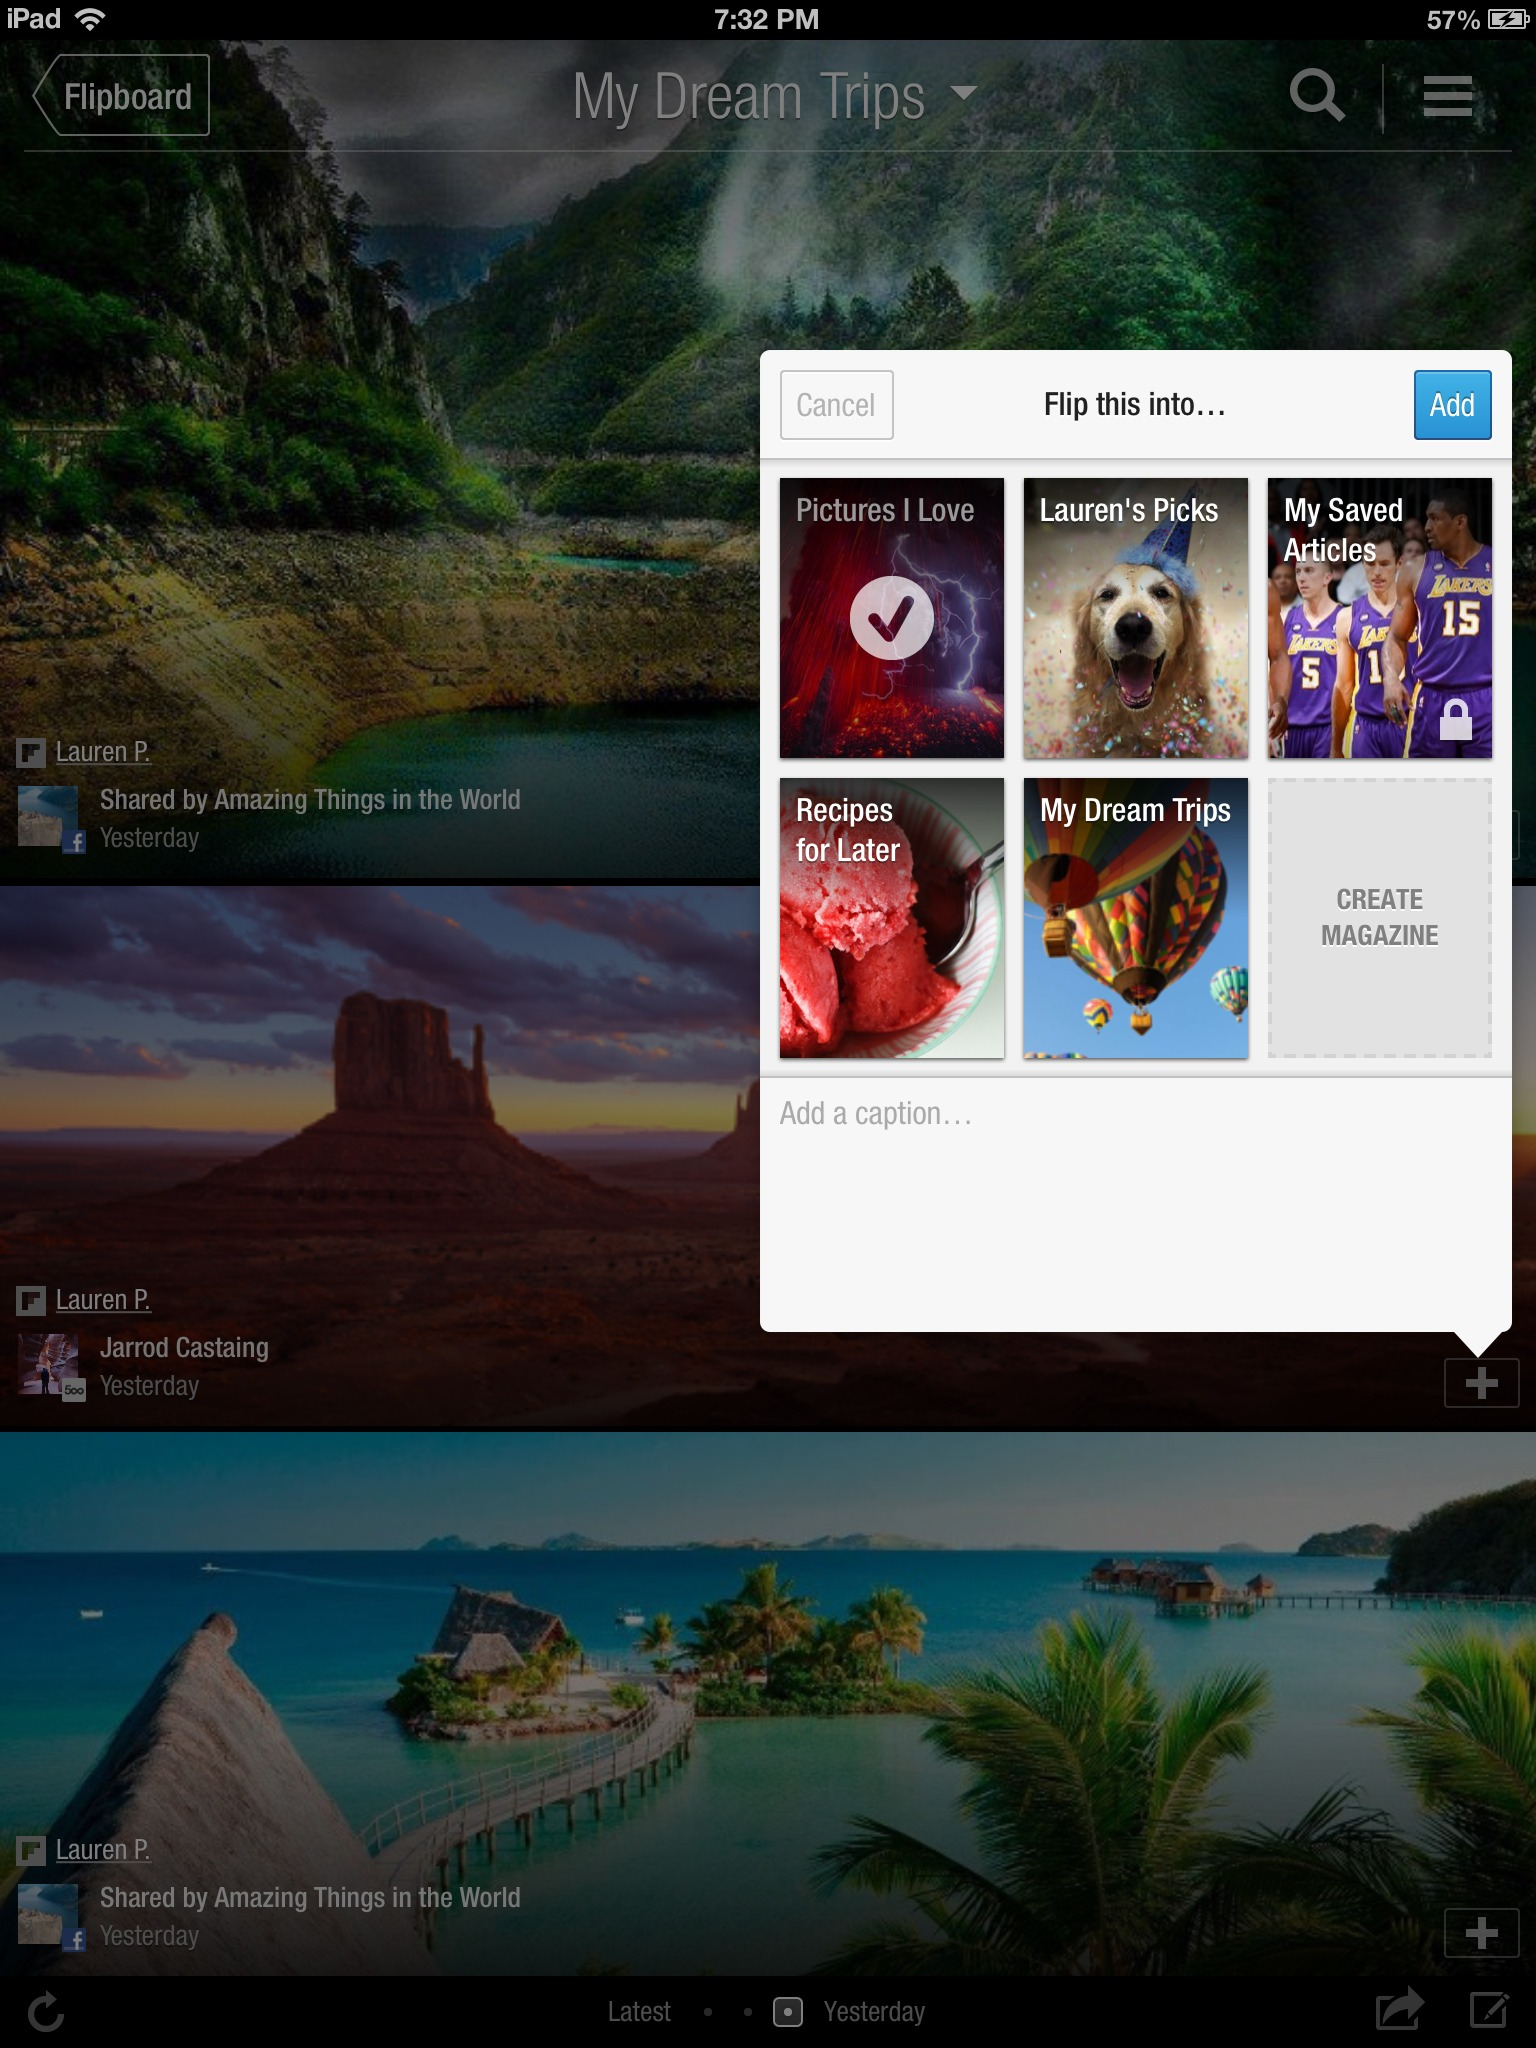 flipboard-2.0-add-to-mag